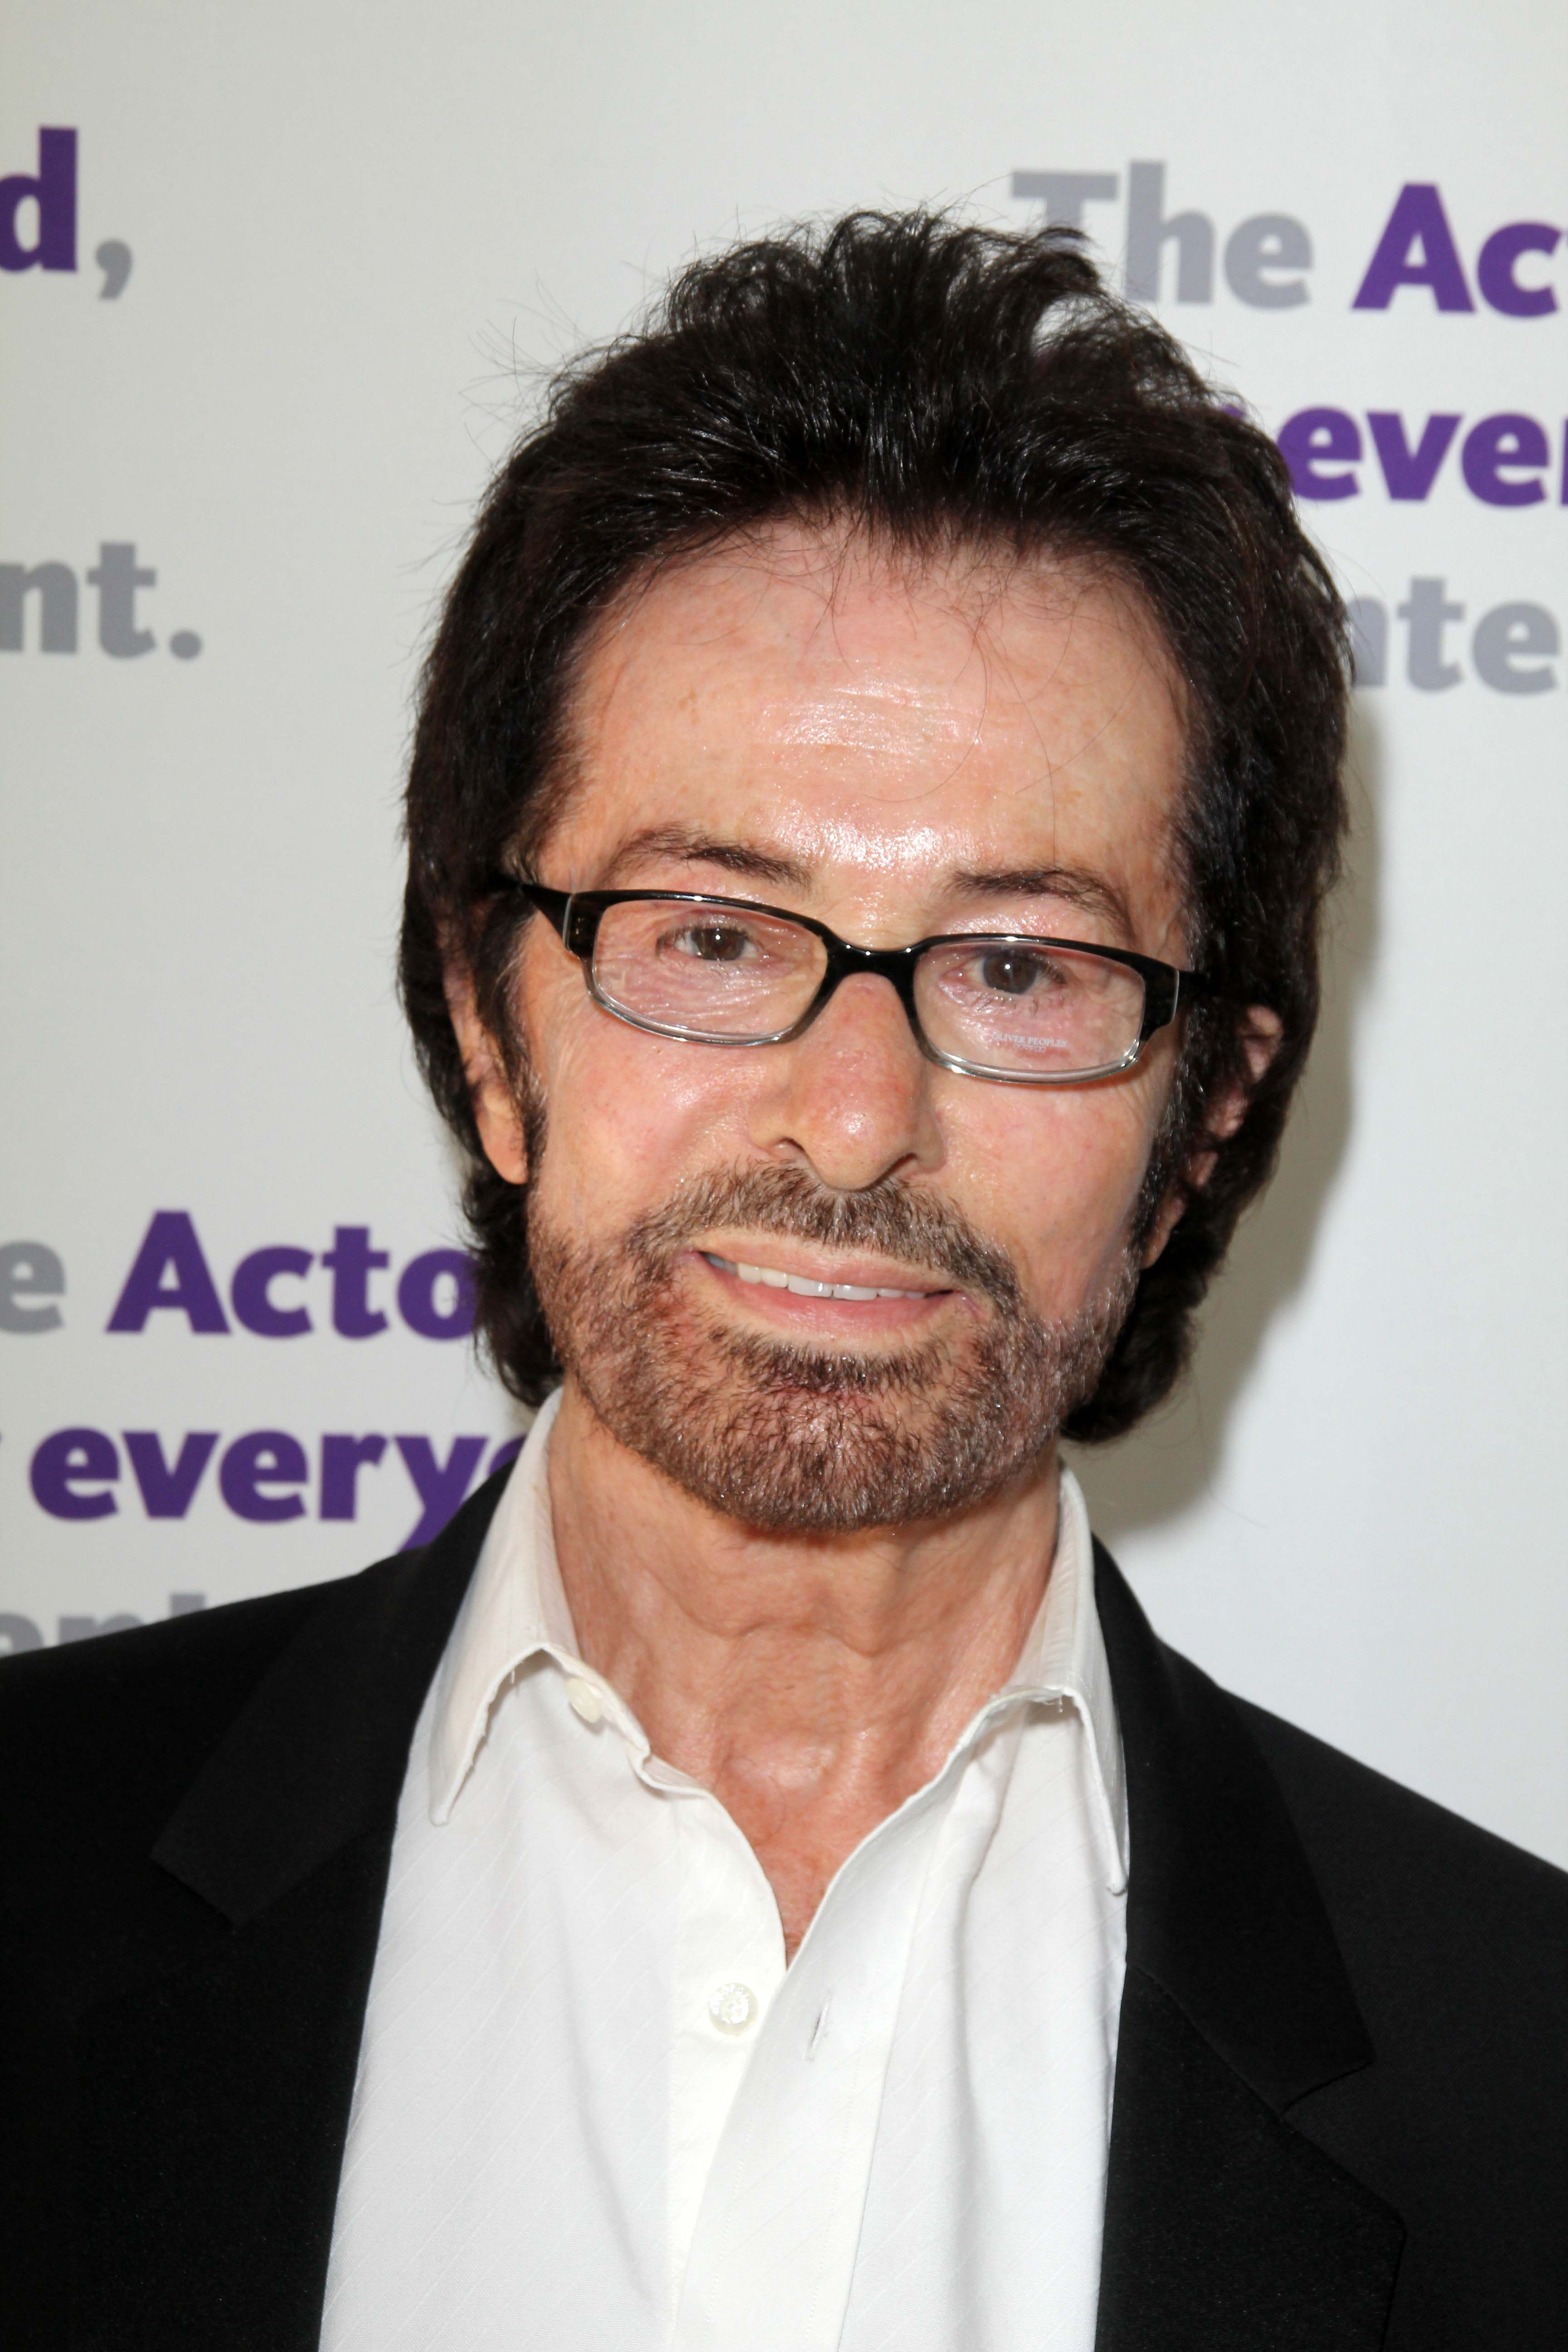 George Chakiris HQ wallpapers